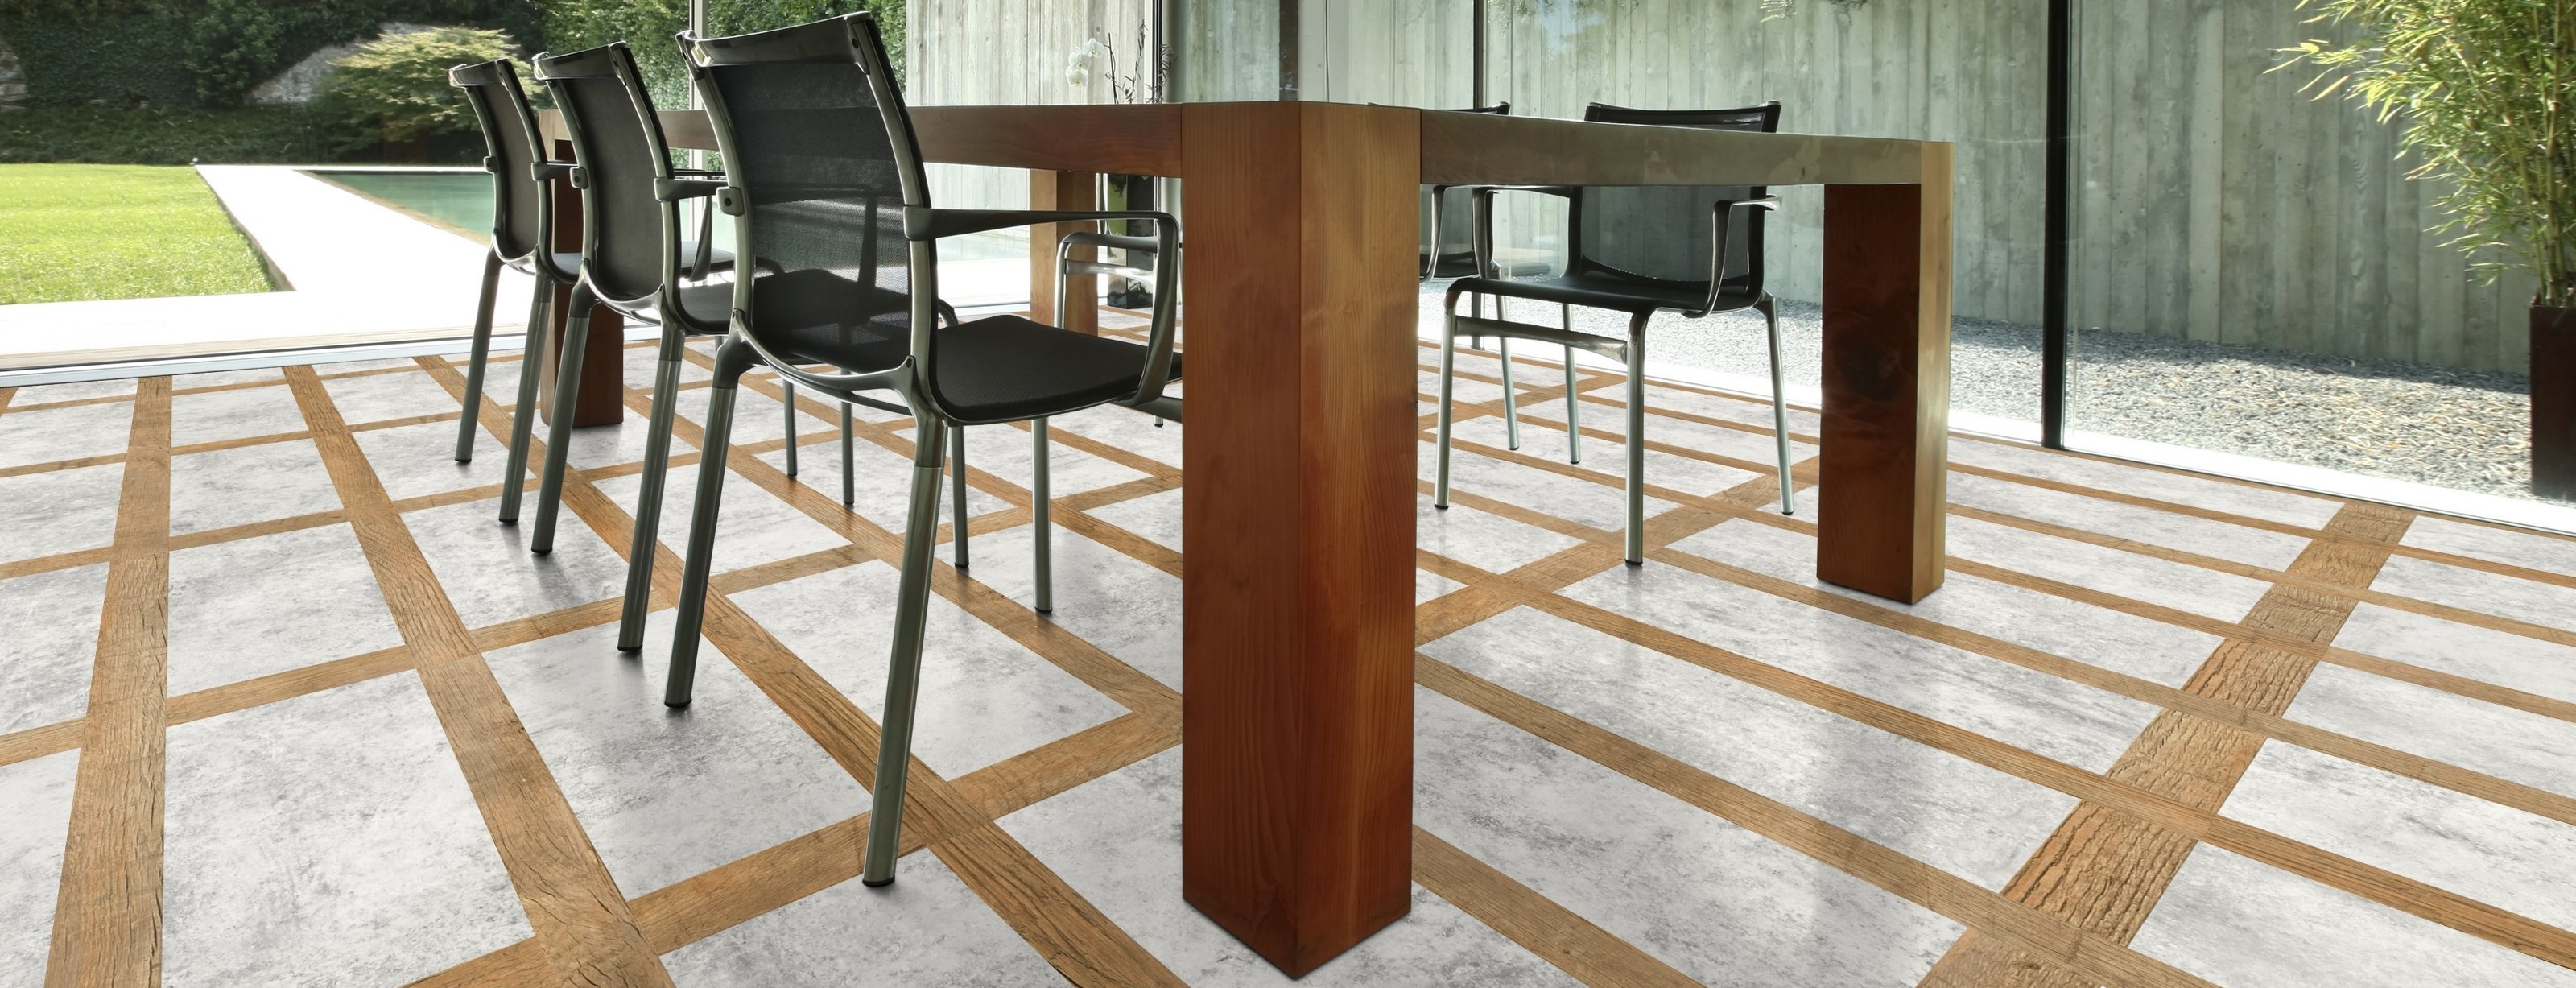 villeroy_and_boch_VB_804-Travertin_Hickory_room_shot_-_Copy